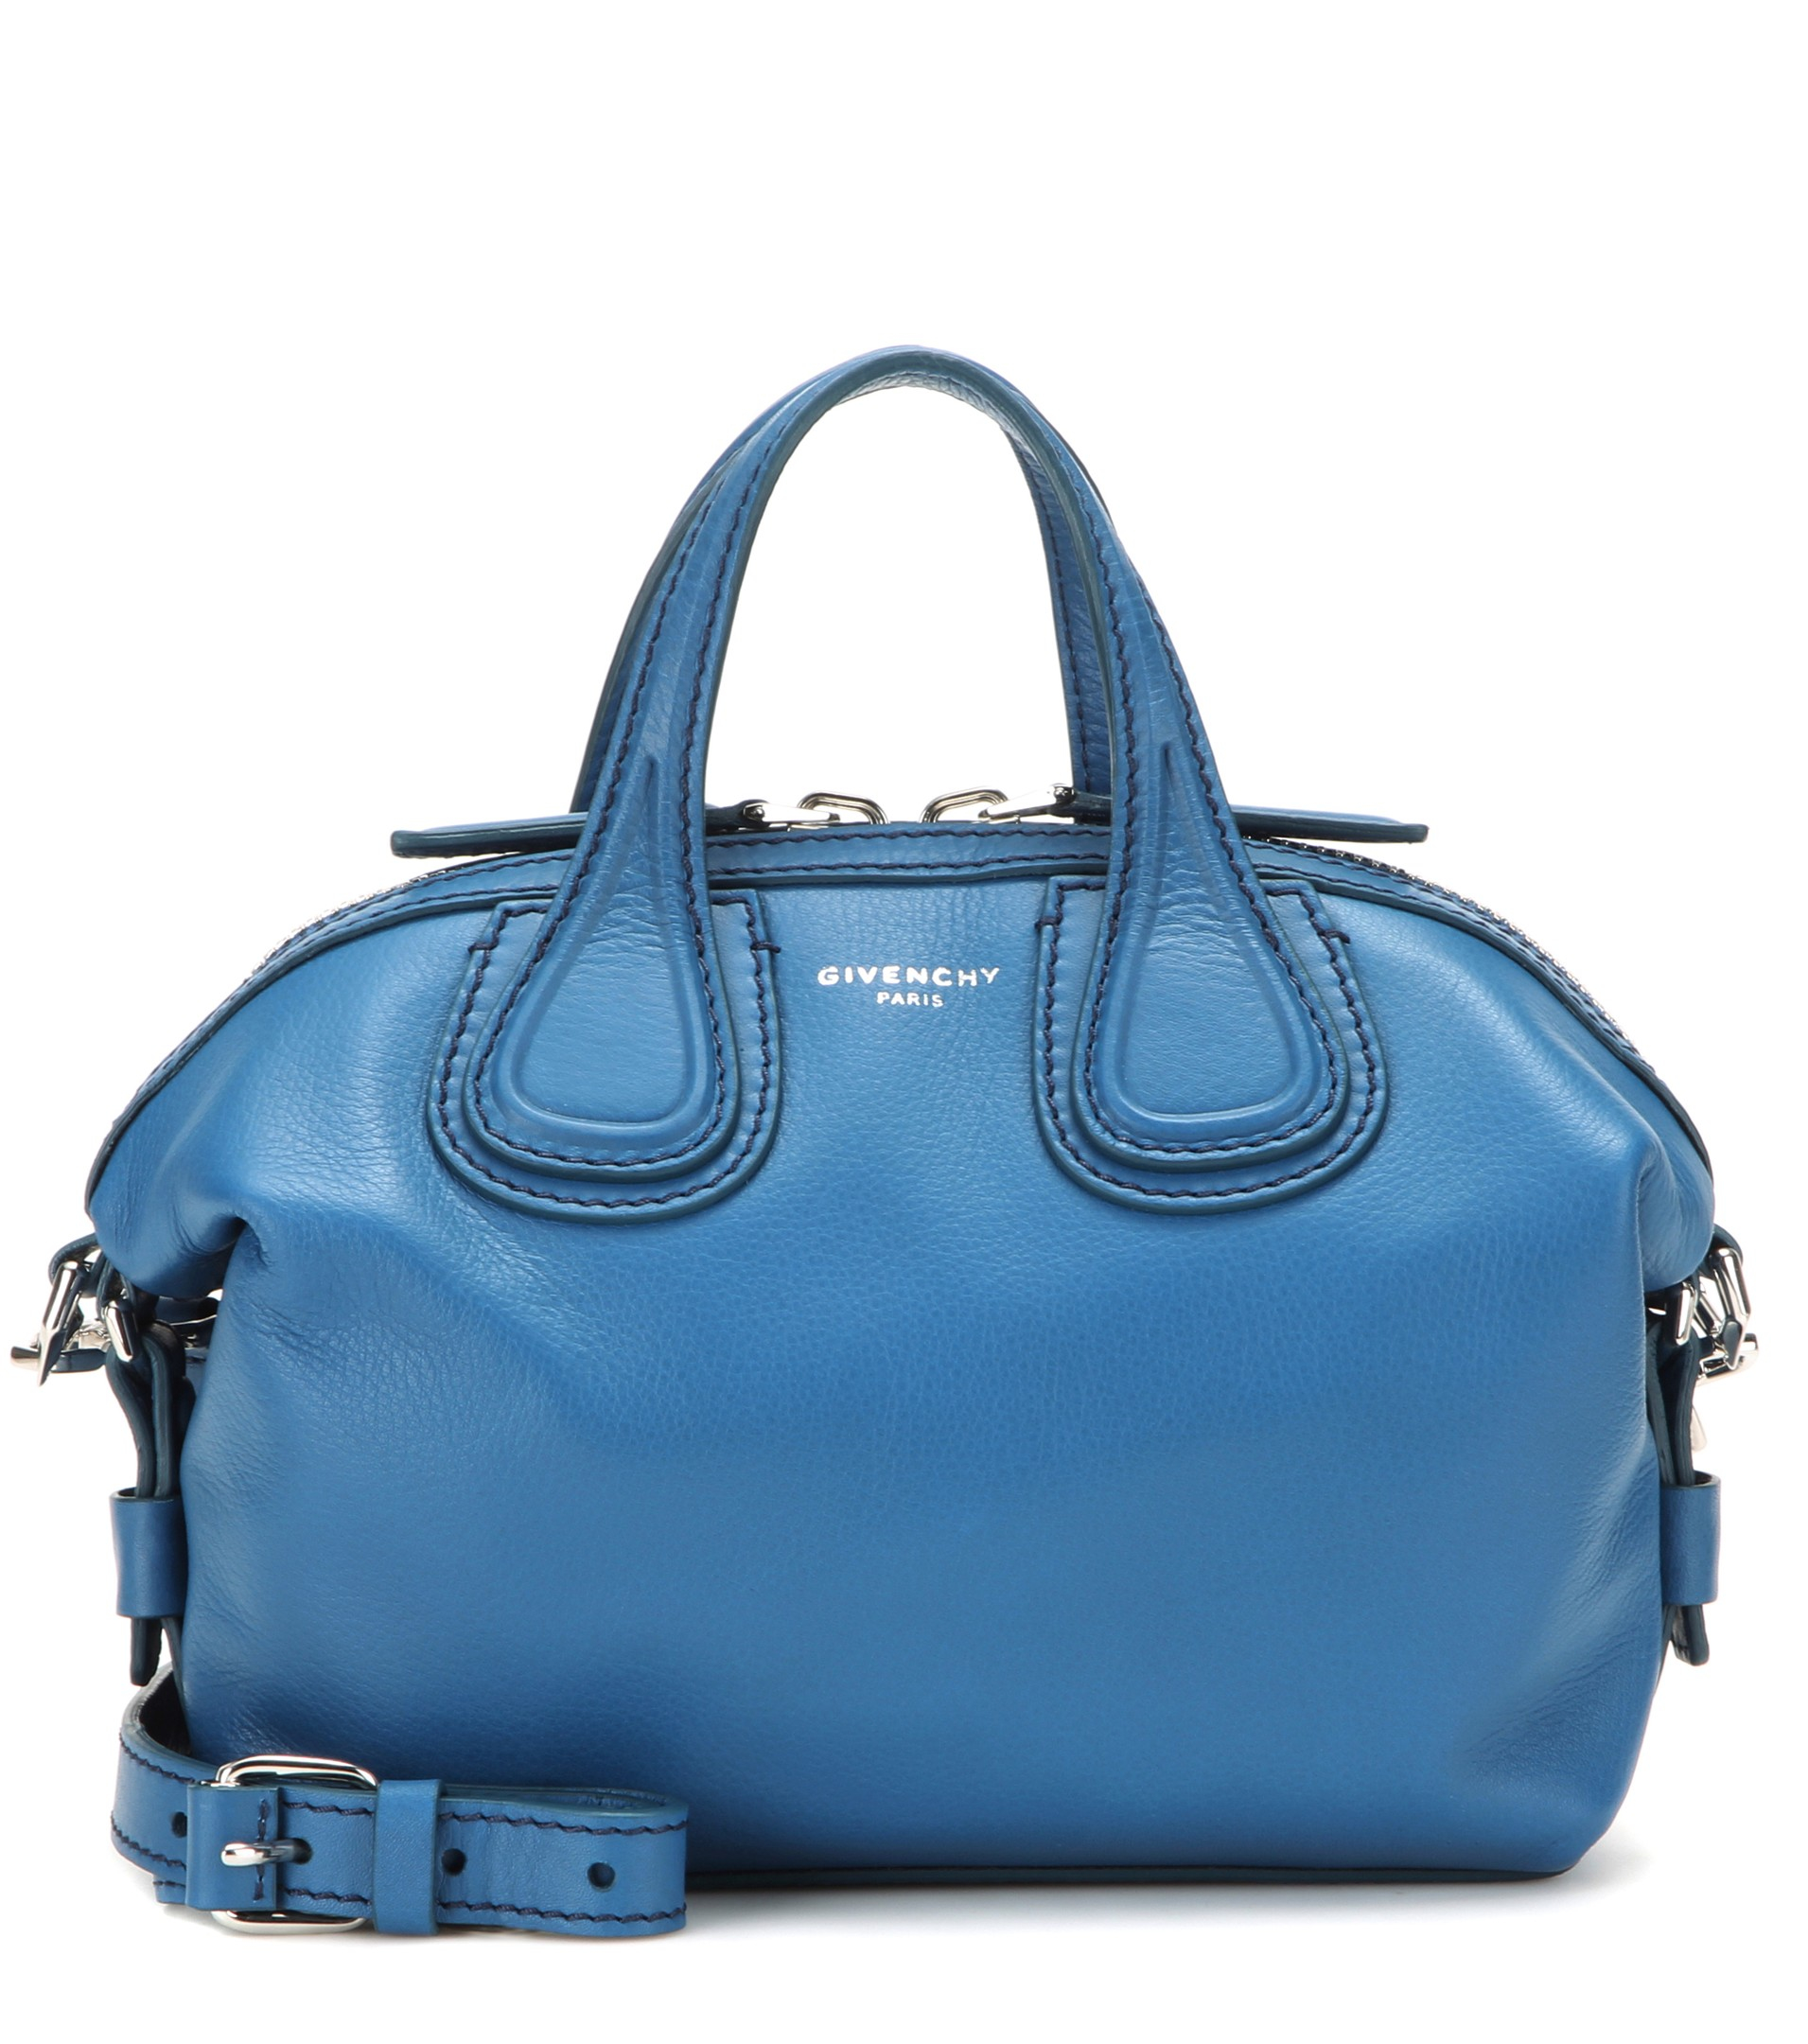 c3d89e0015db Lyst - Givenchy Nightingale Micro Leather Shoulder Bag in Blue